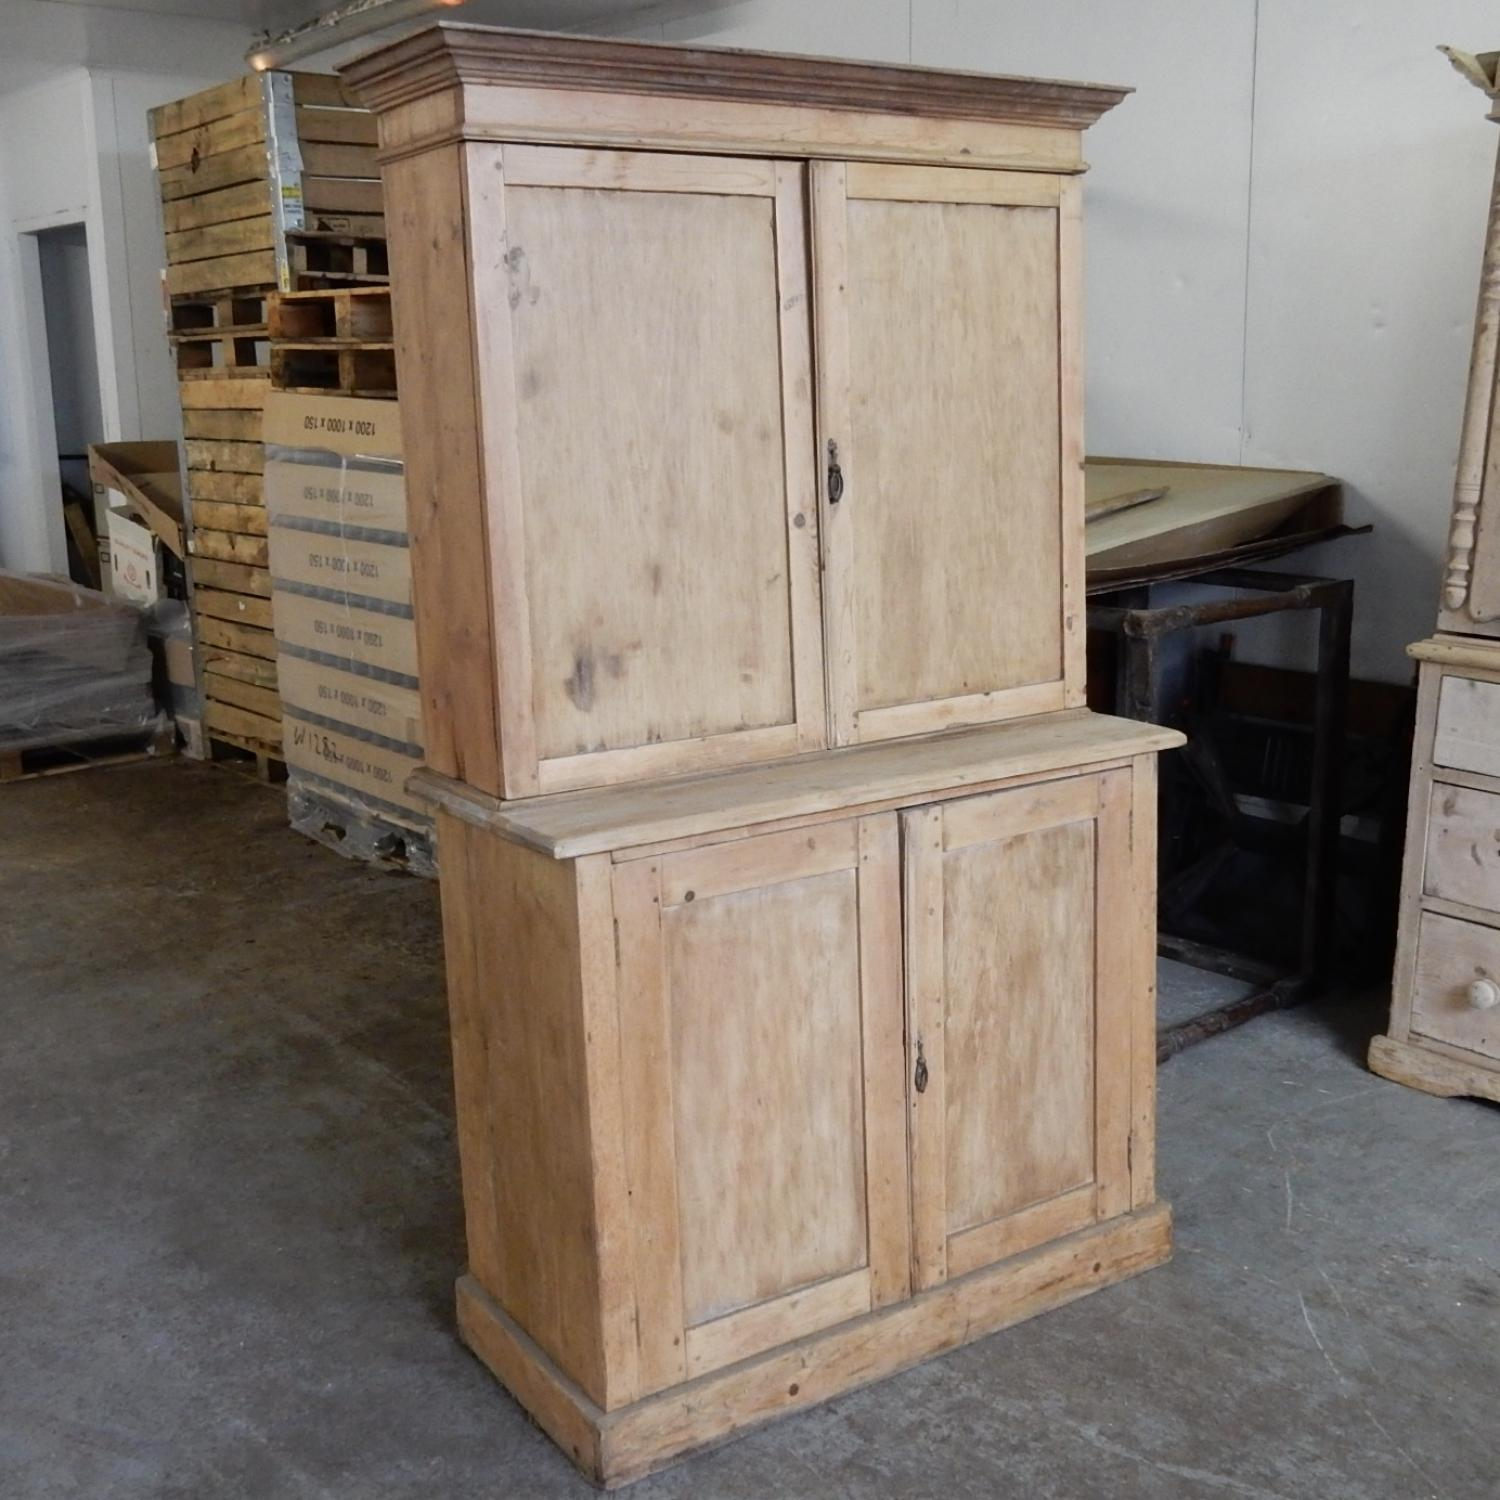 Antique Pine Cupboard (paint project)